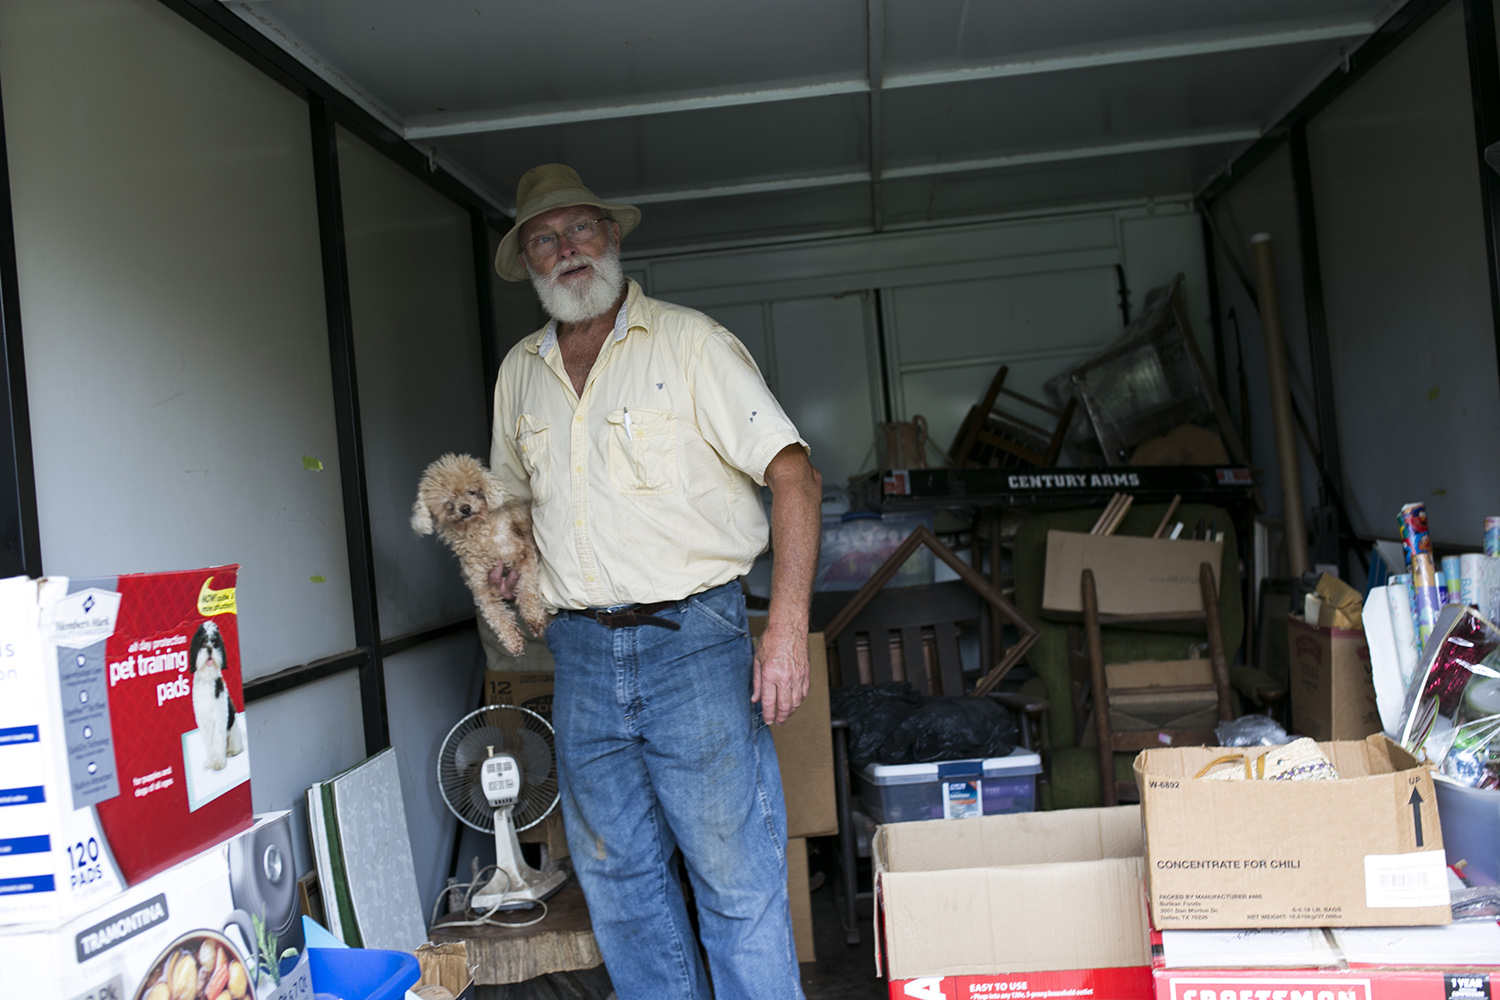 Robert Daffin stores his belongings inside a storage unit parked in front of his home in Marianna, Fla., while he repairs his house after the storm.